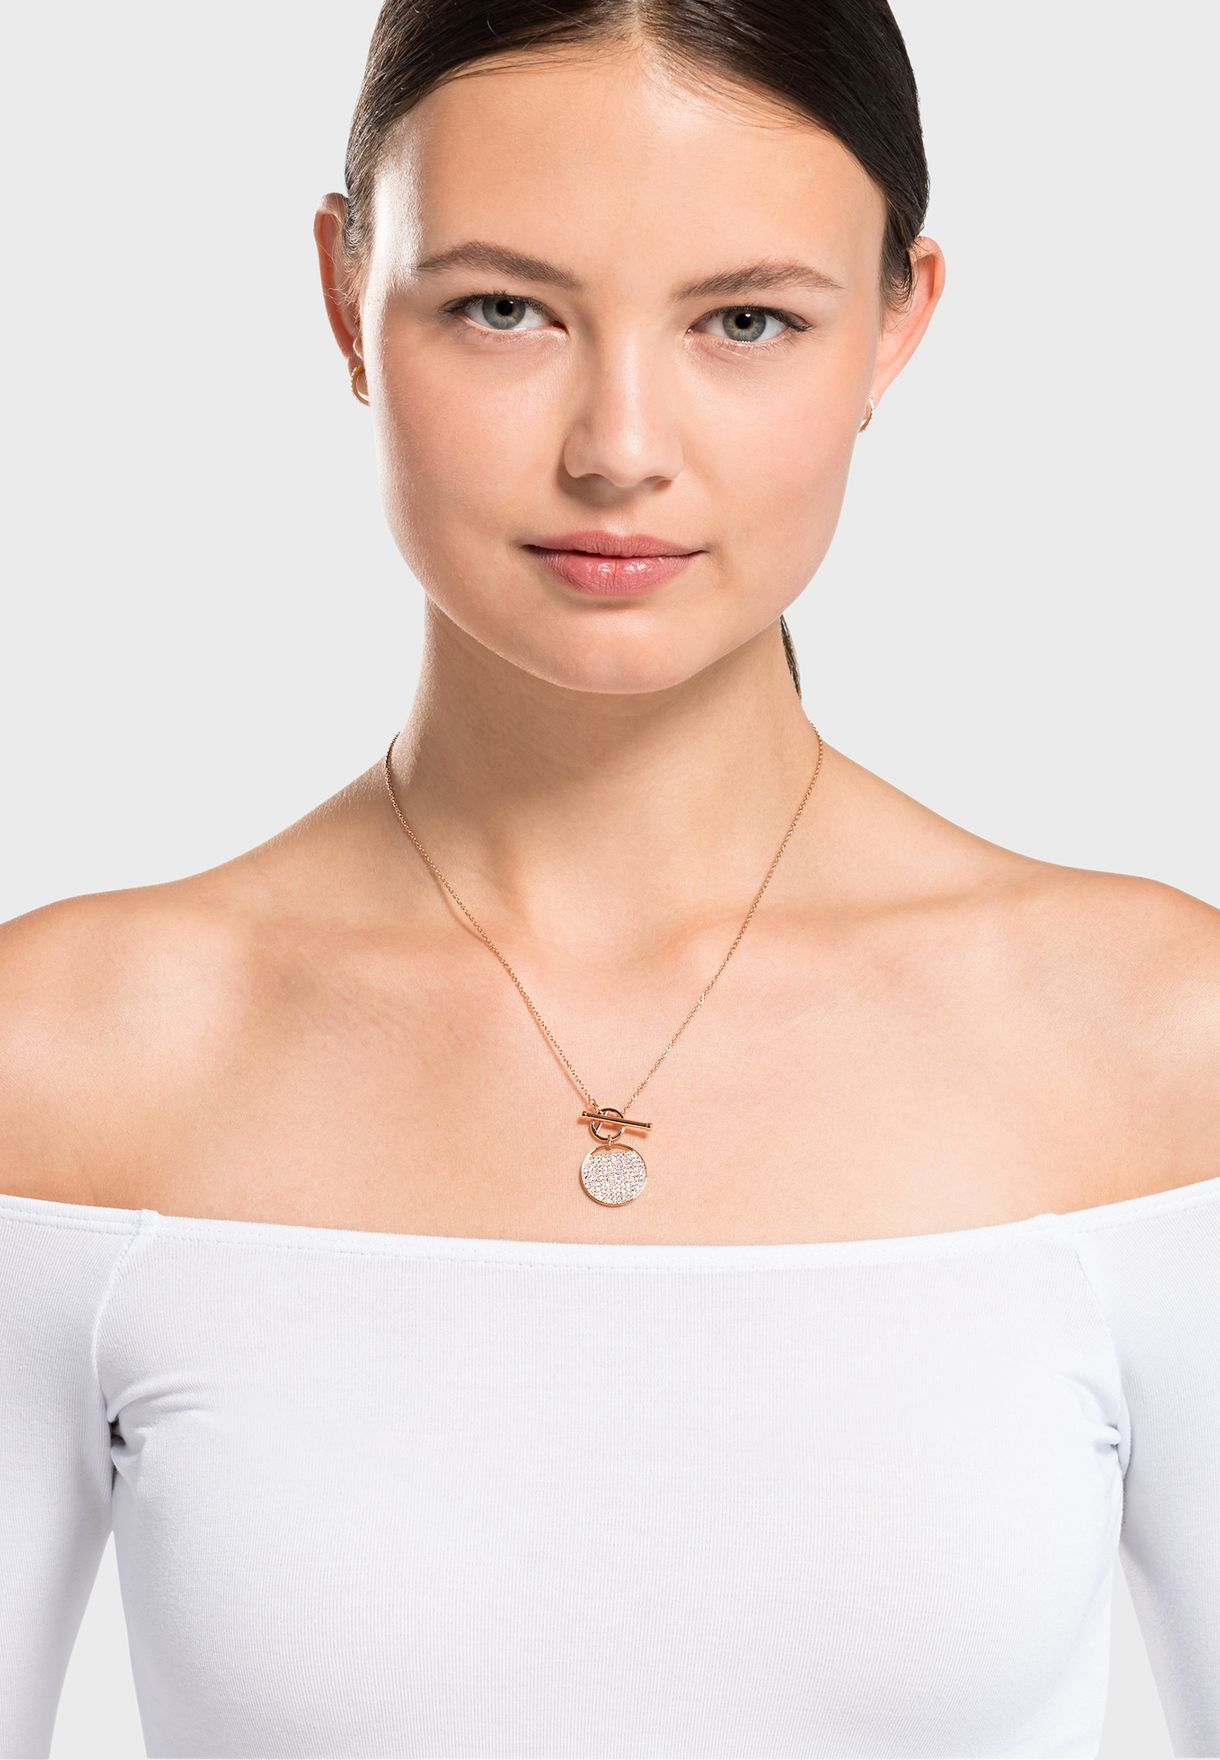 Ginger Pendant Necklace+Earrings Set